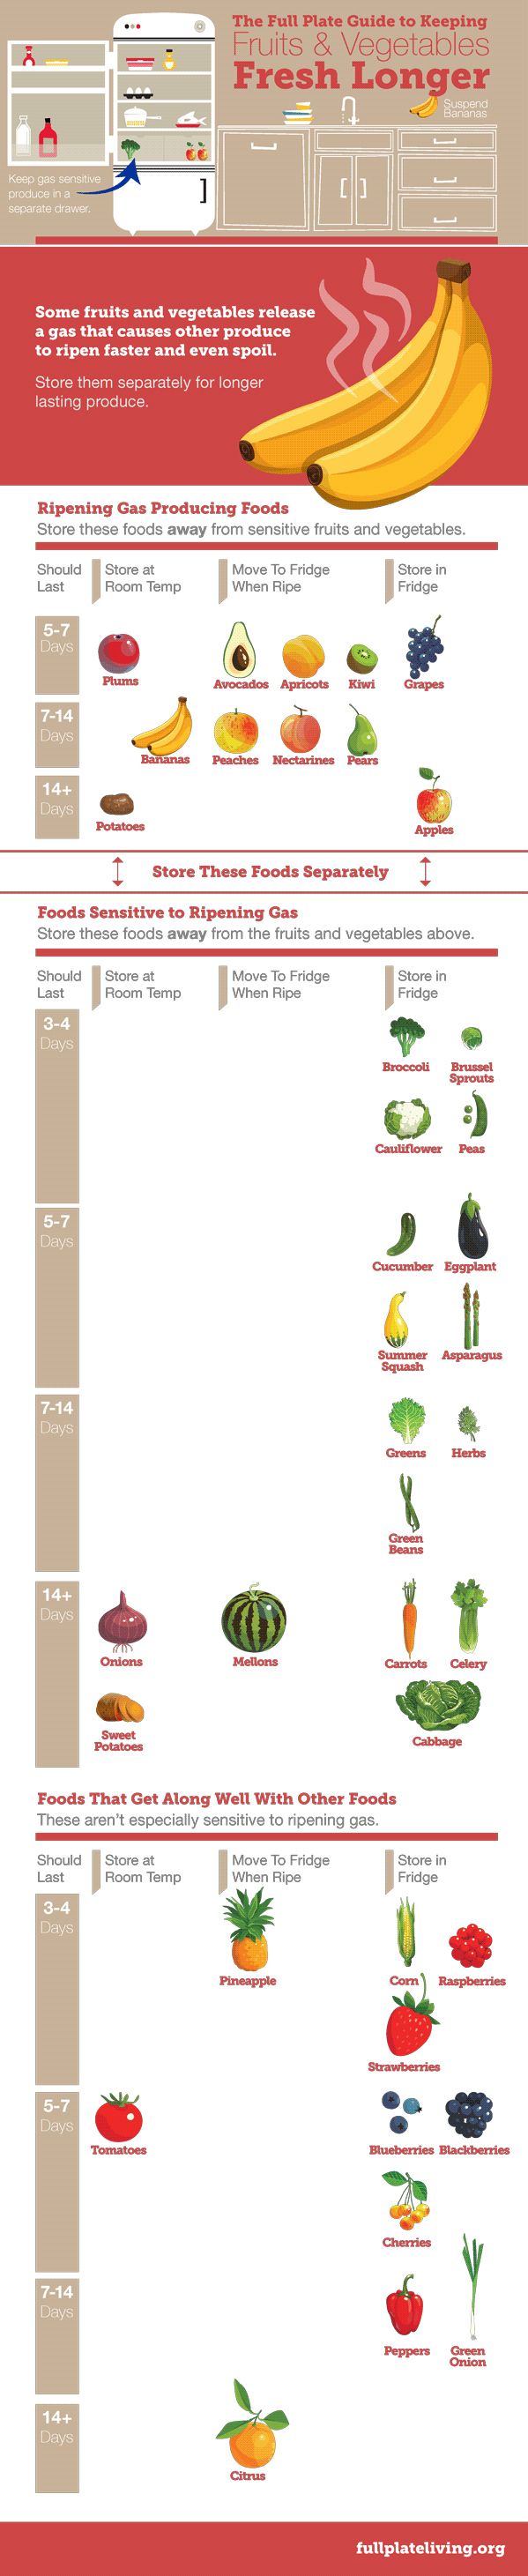 storing-food-infographic.png